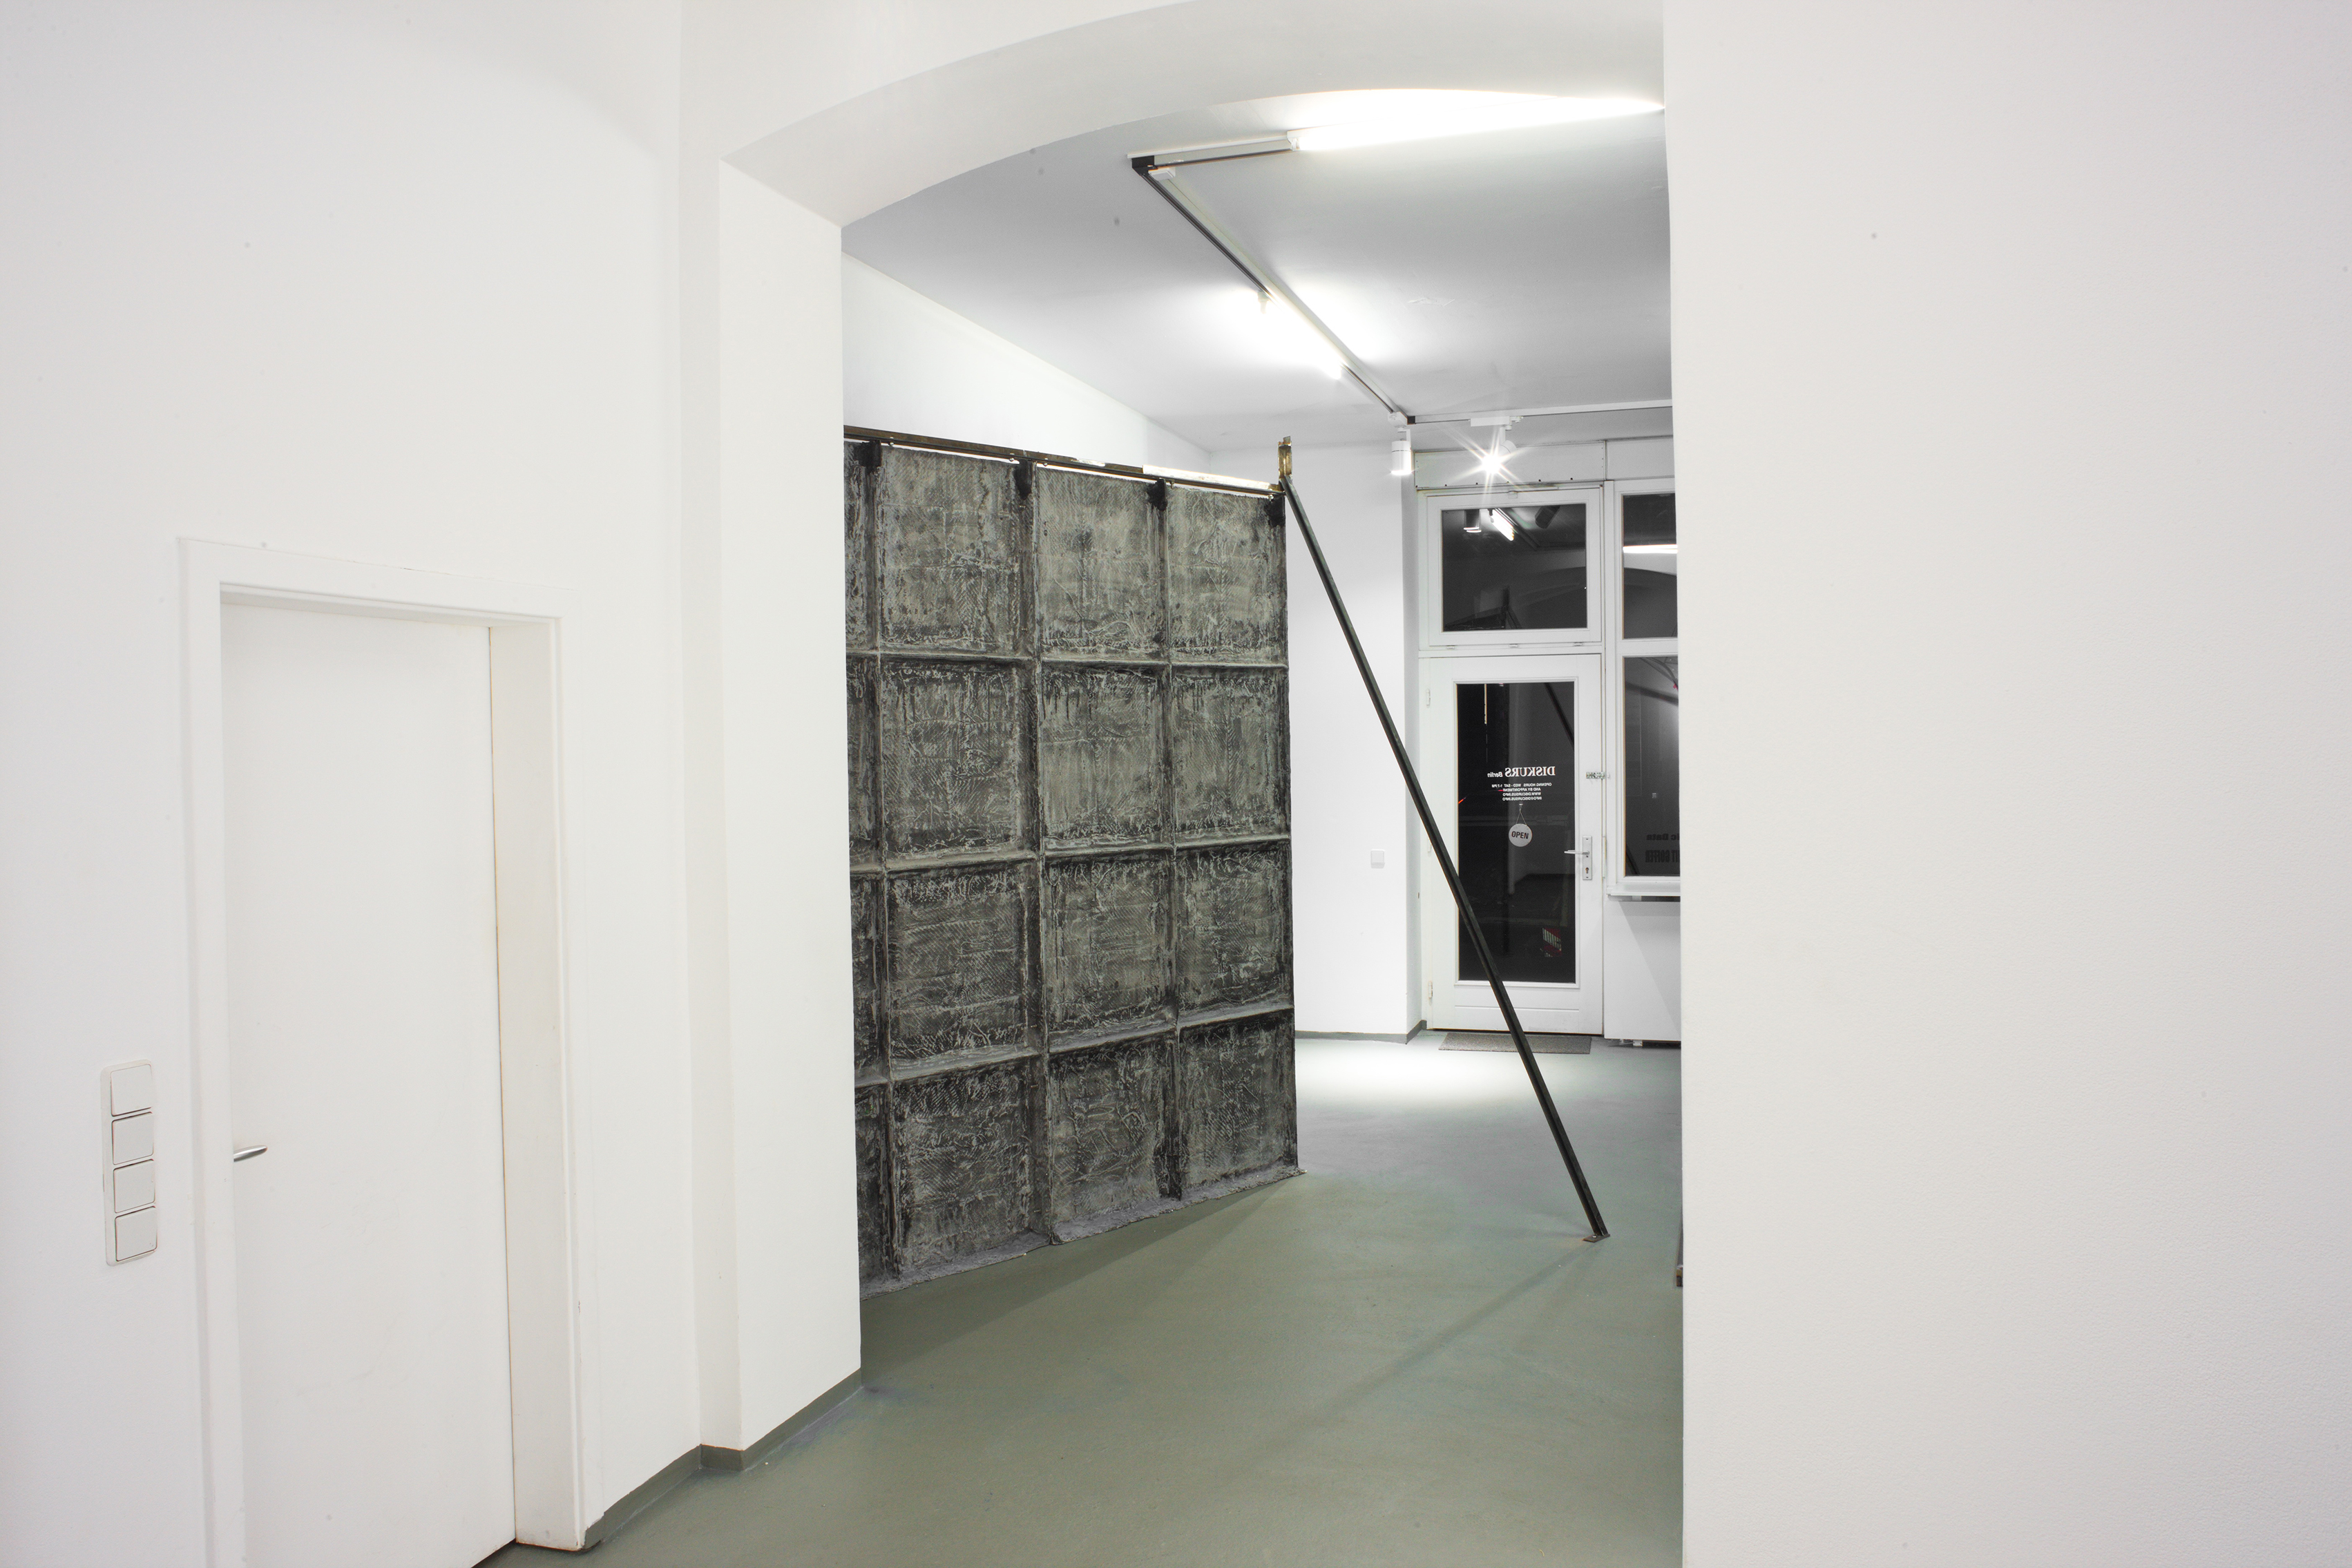 Installation View - God's Biometric Data, 2019 - Exhibition by Erik Andersen and Amit Goffer at Diskurs Berlin - Back side of a sculpture by Erik Andersen